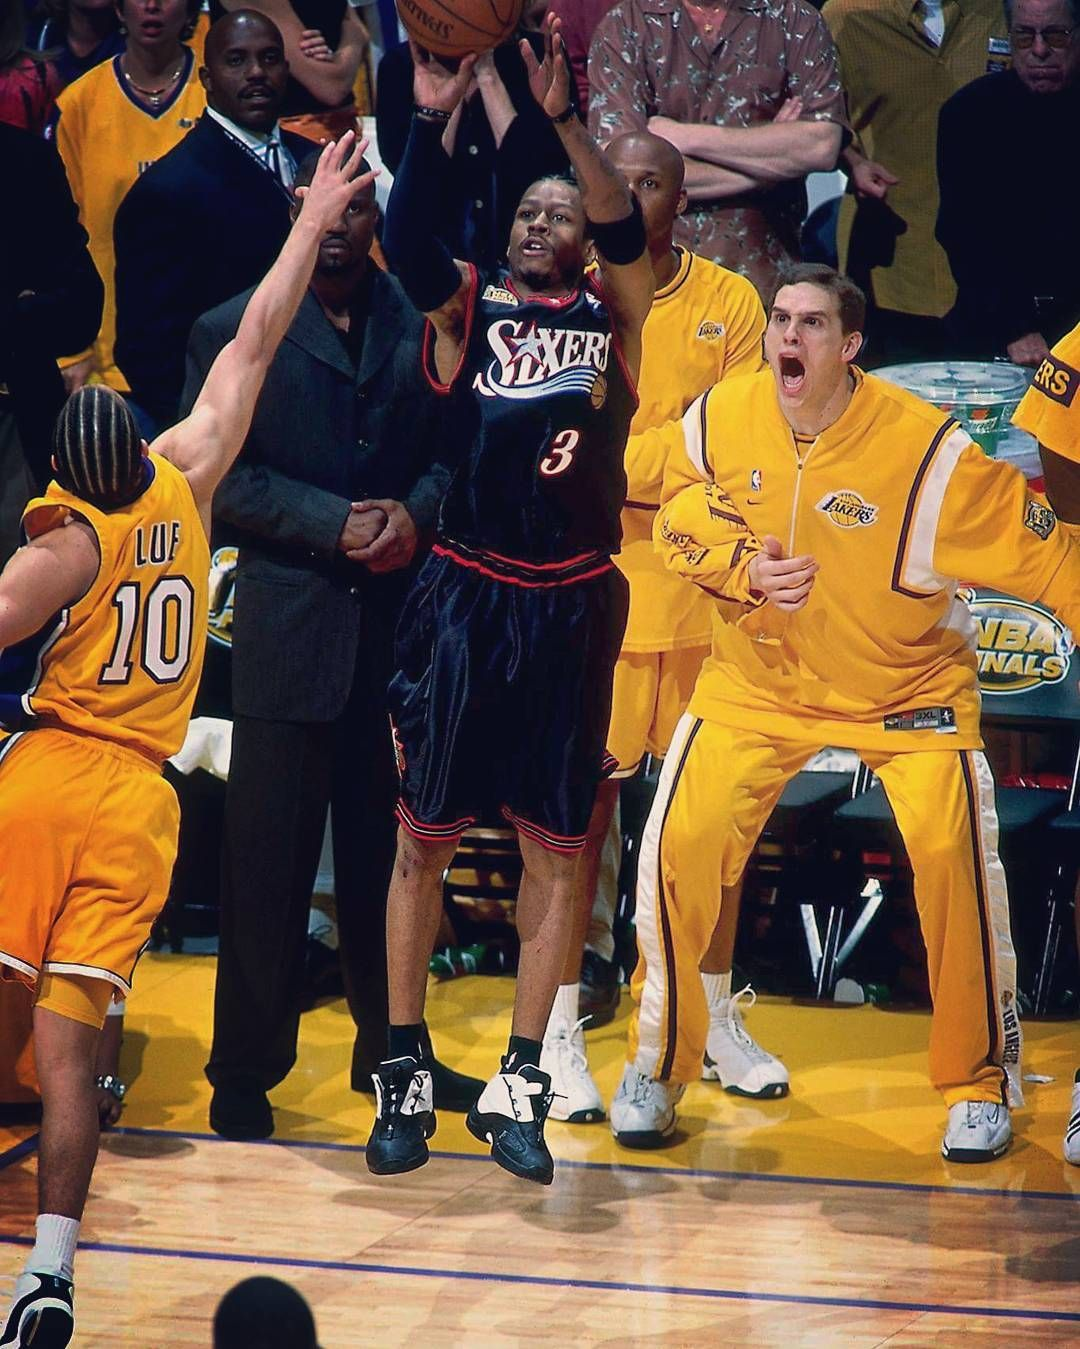 Allen Iverson Shots Over Tyronn Lue 2001 Nba Finals Game 1 Medium